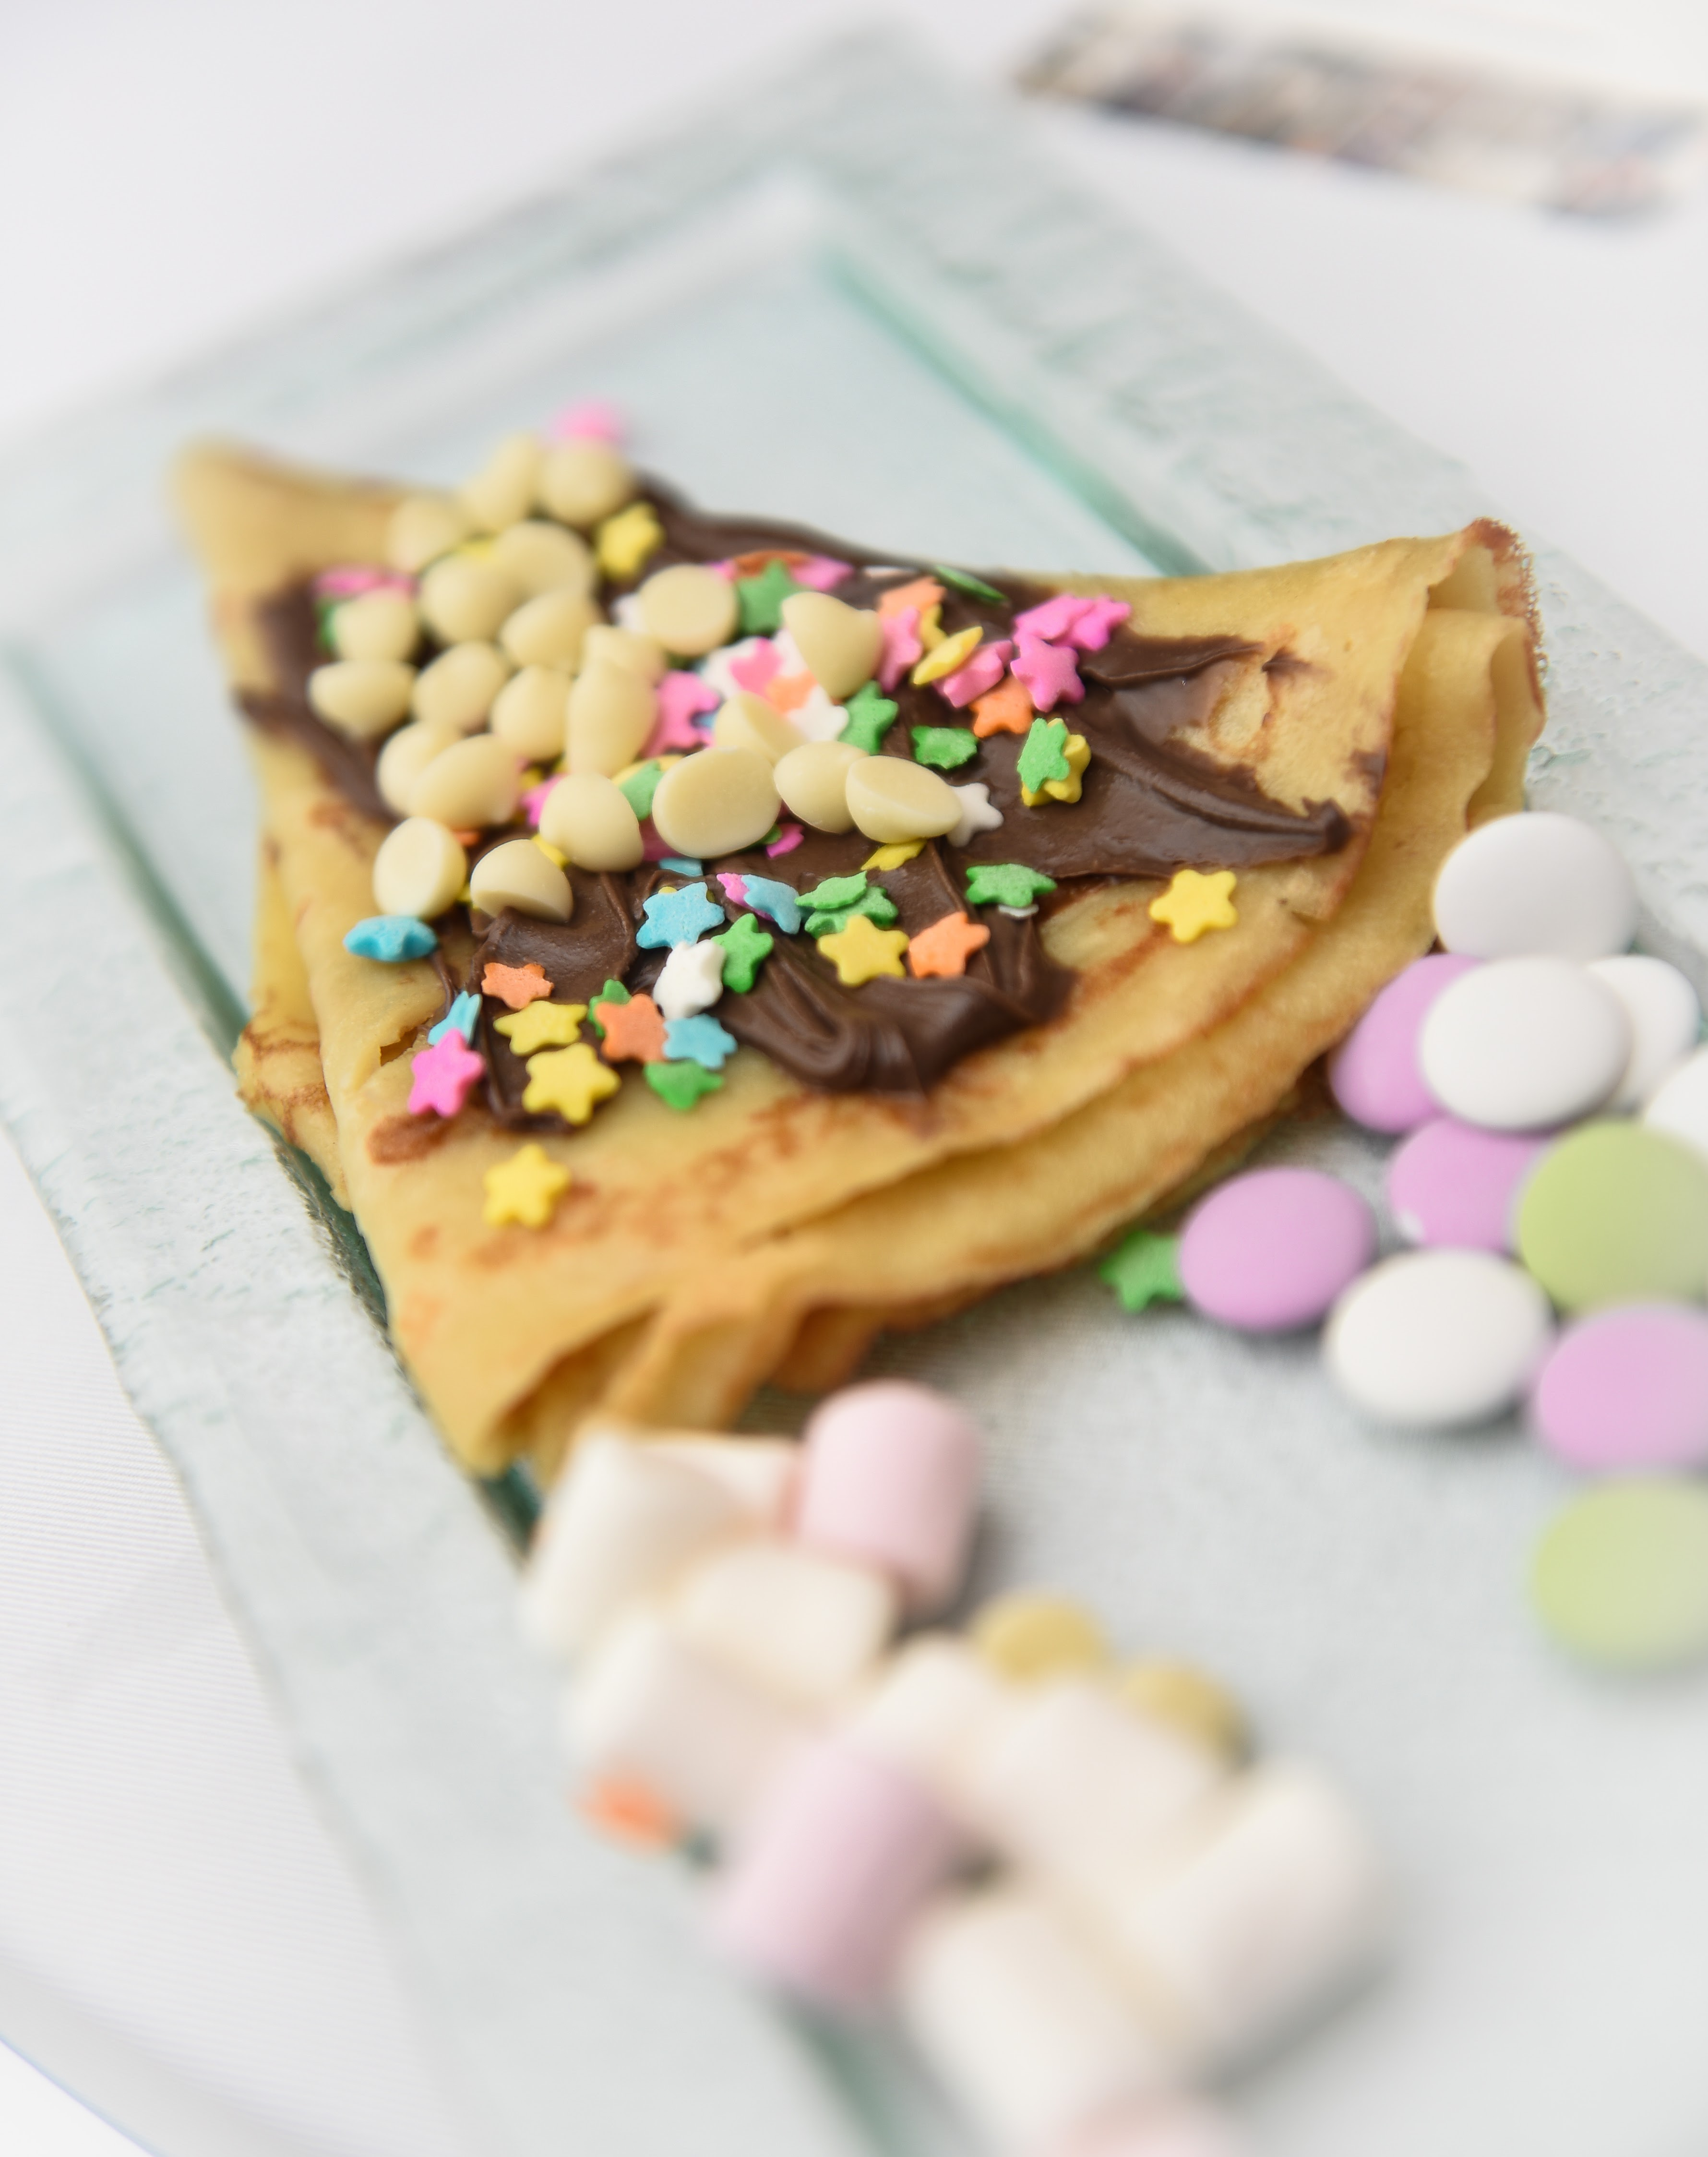 Chocolate filled crepe